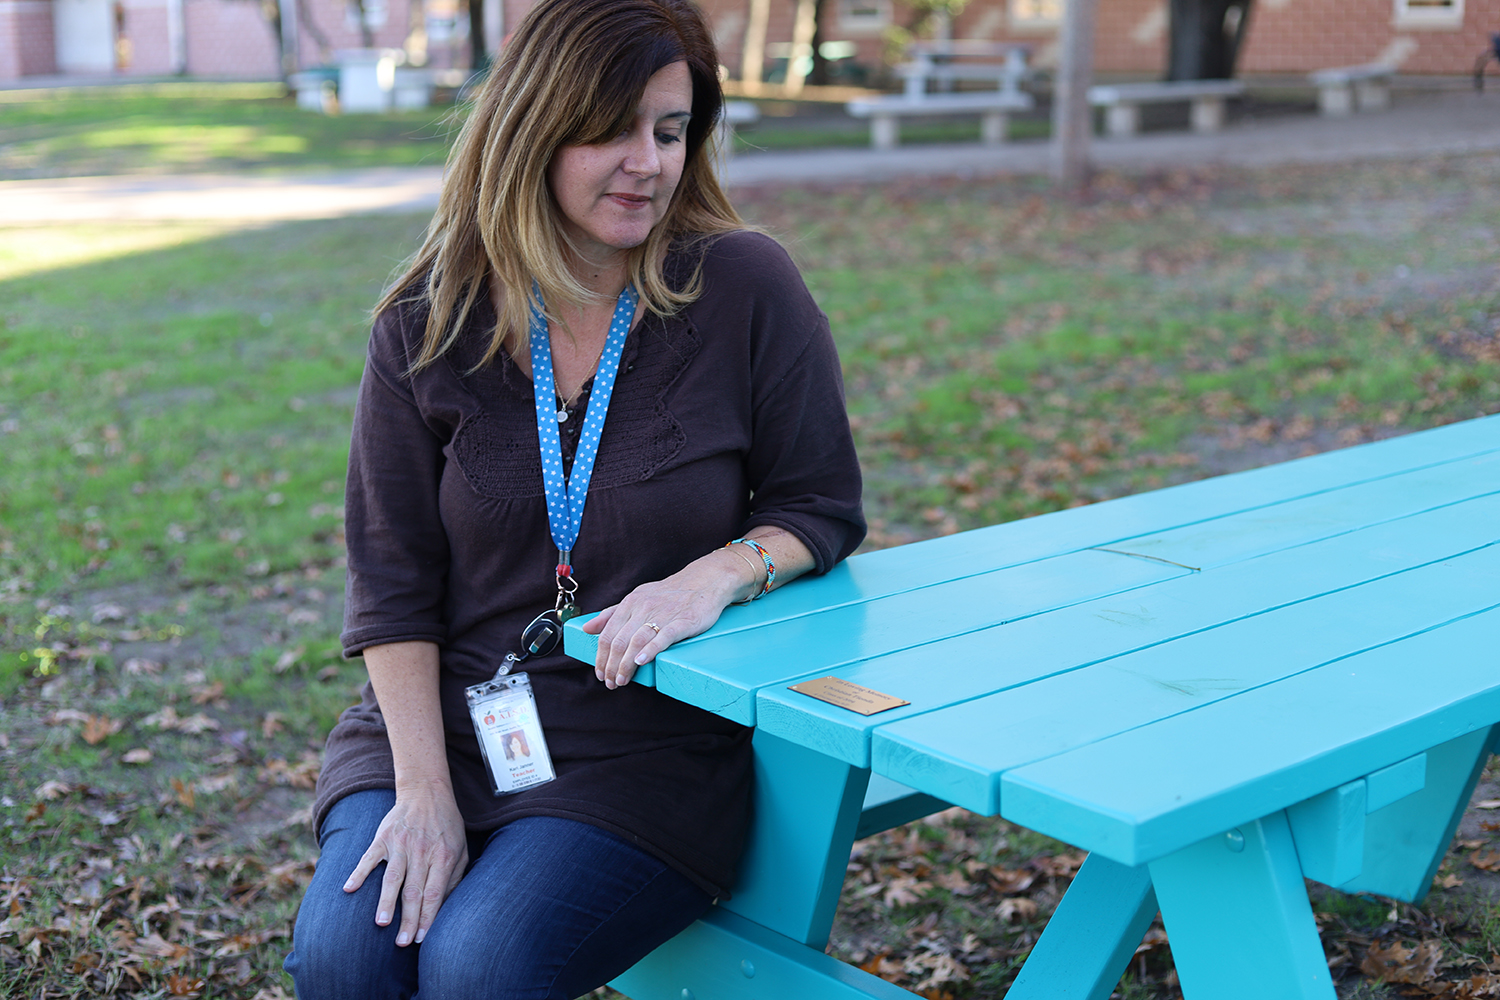 SCORES teacher Kari Janner sits at one of the two new picnic tables that were donated to the campus to honor an alum who recently passed away.